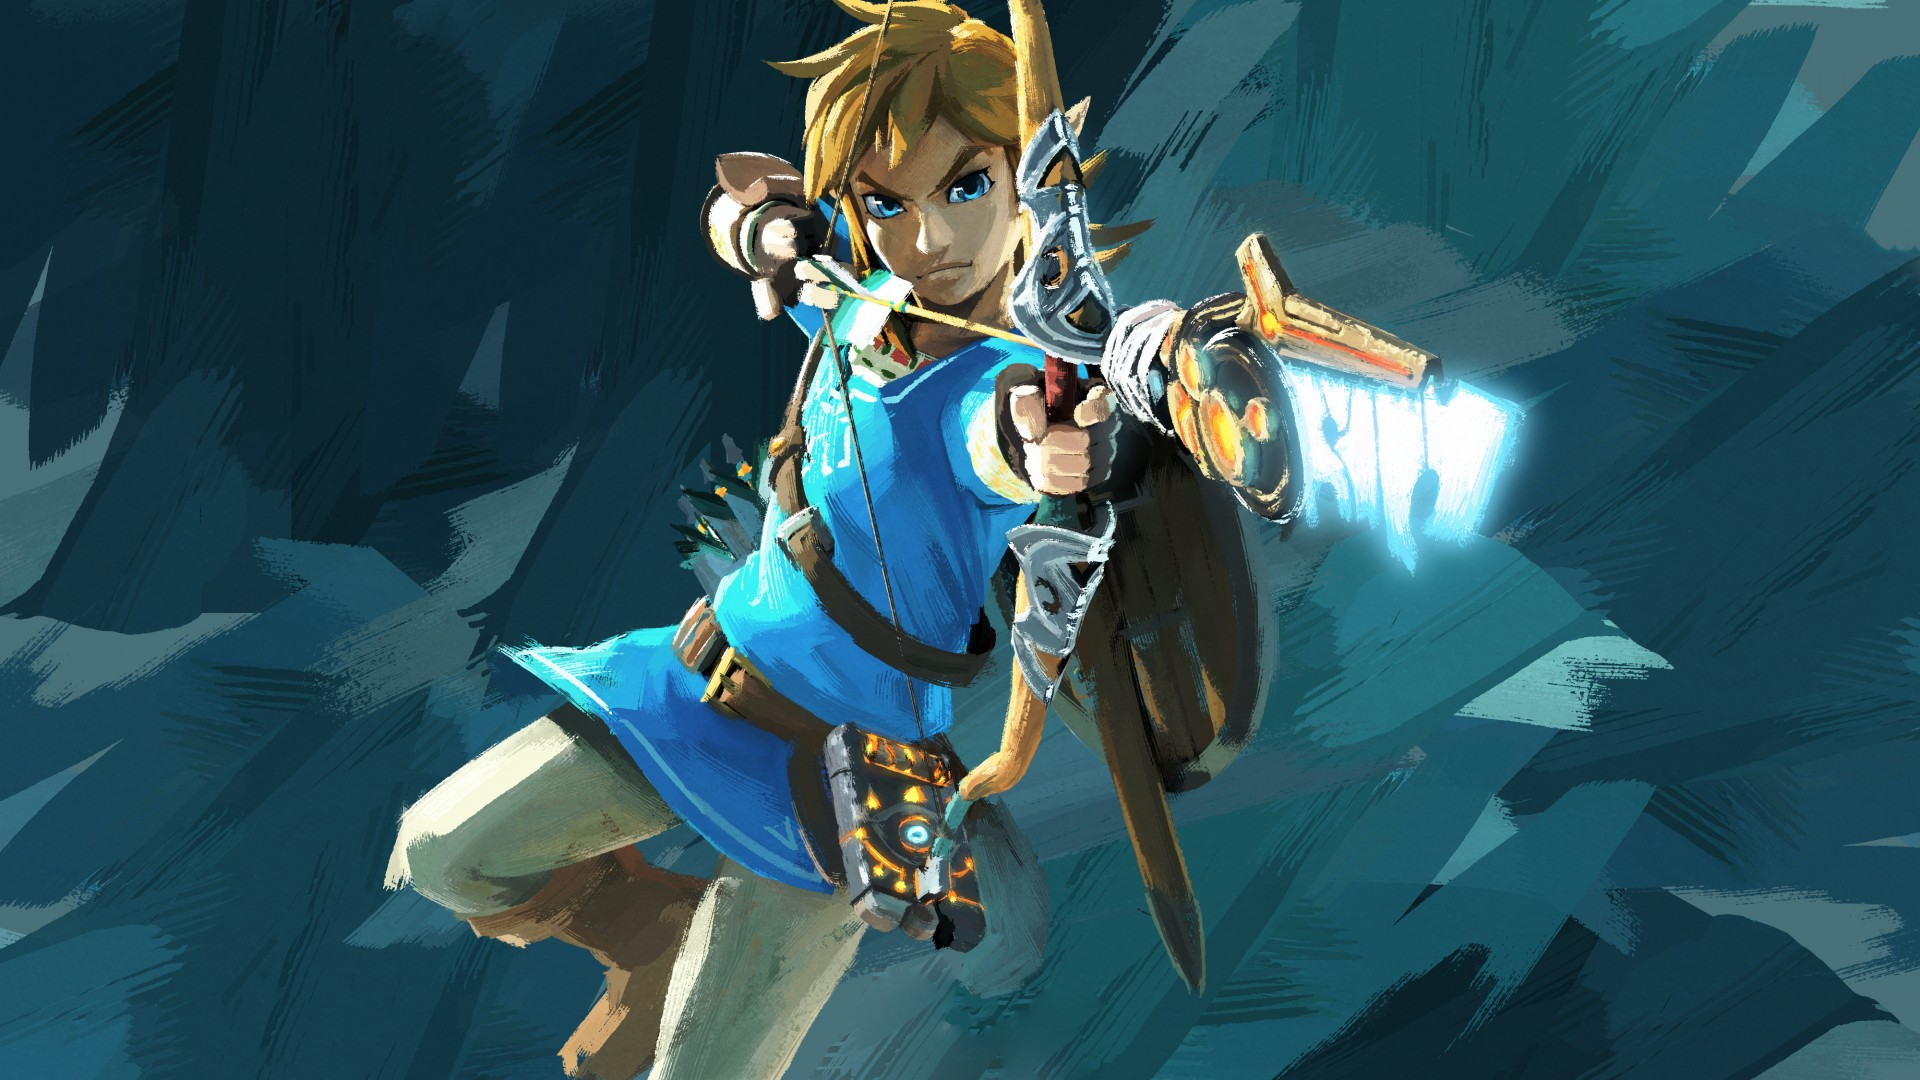 Wallpaper The Legend Of Zelda Breath Of The Wild Best Games